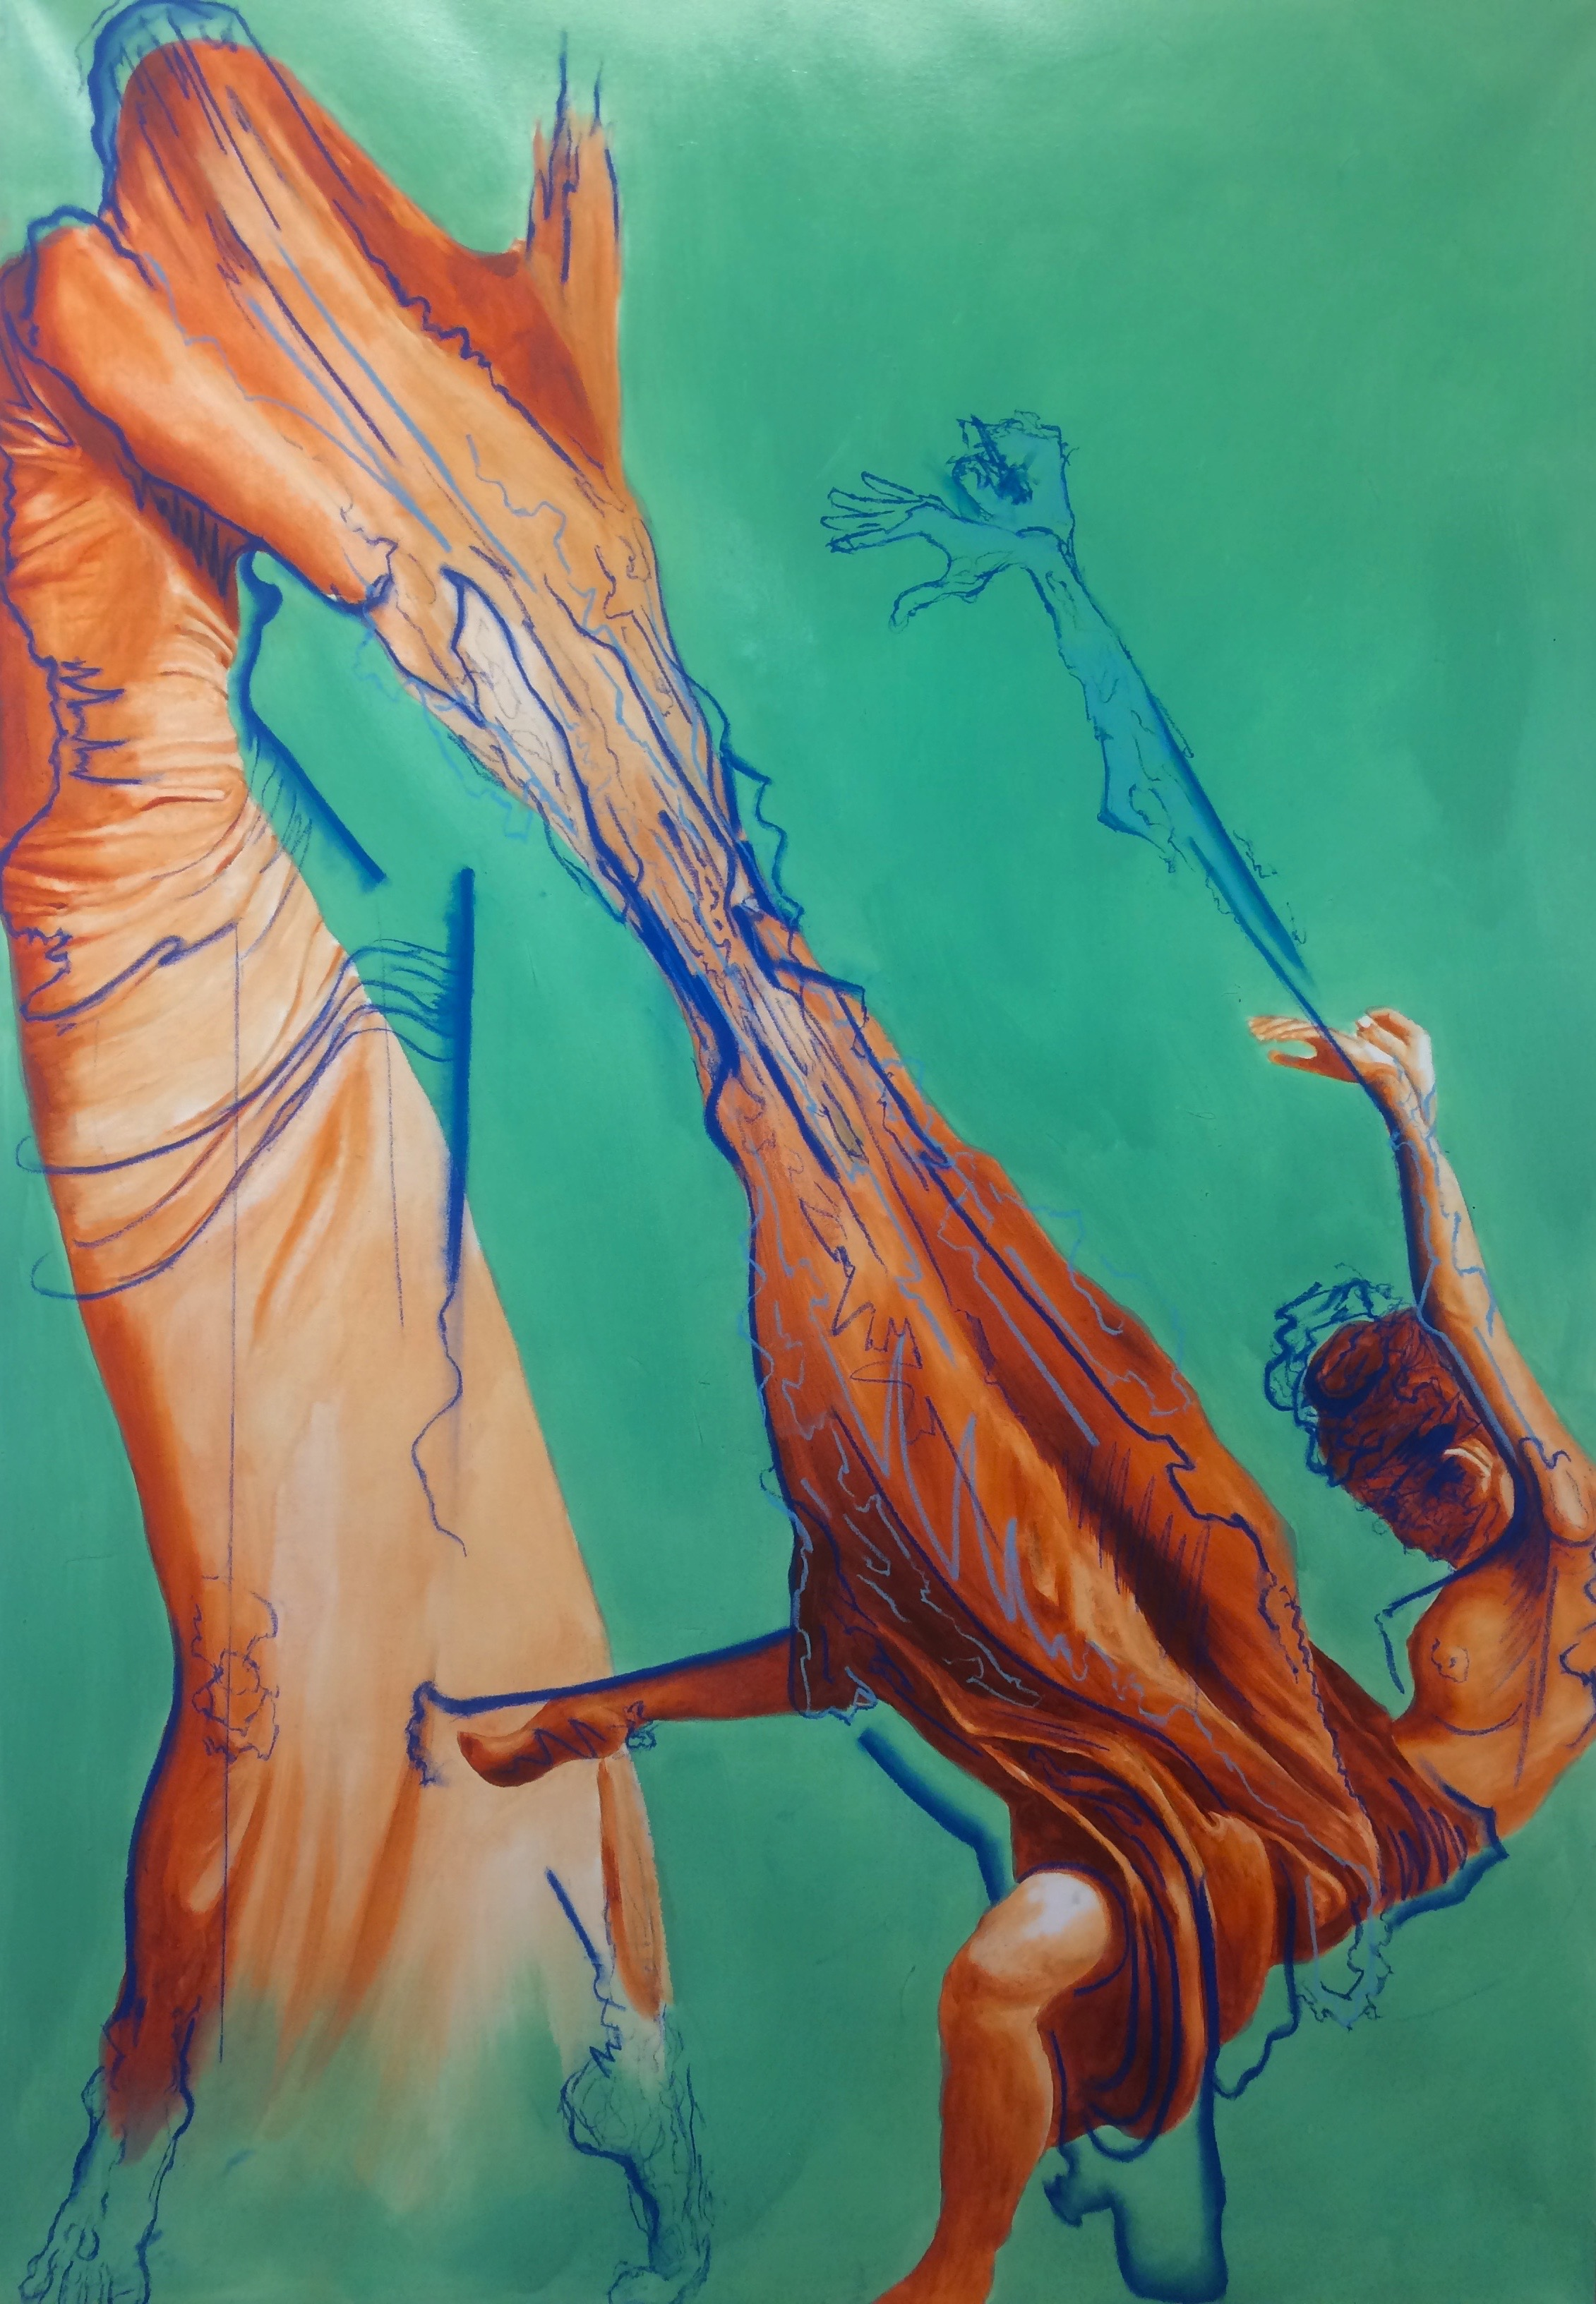 A Mother's Embrace  oil and soft pastel on canvas 45x65 inches 2015